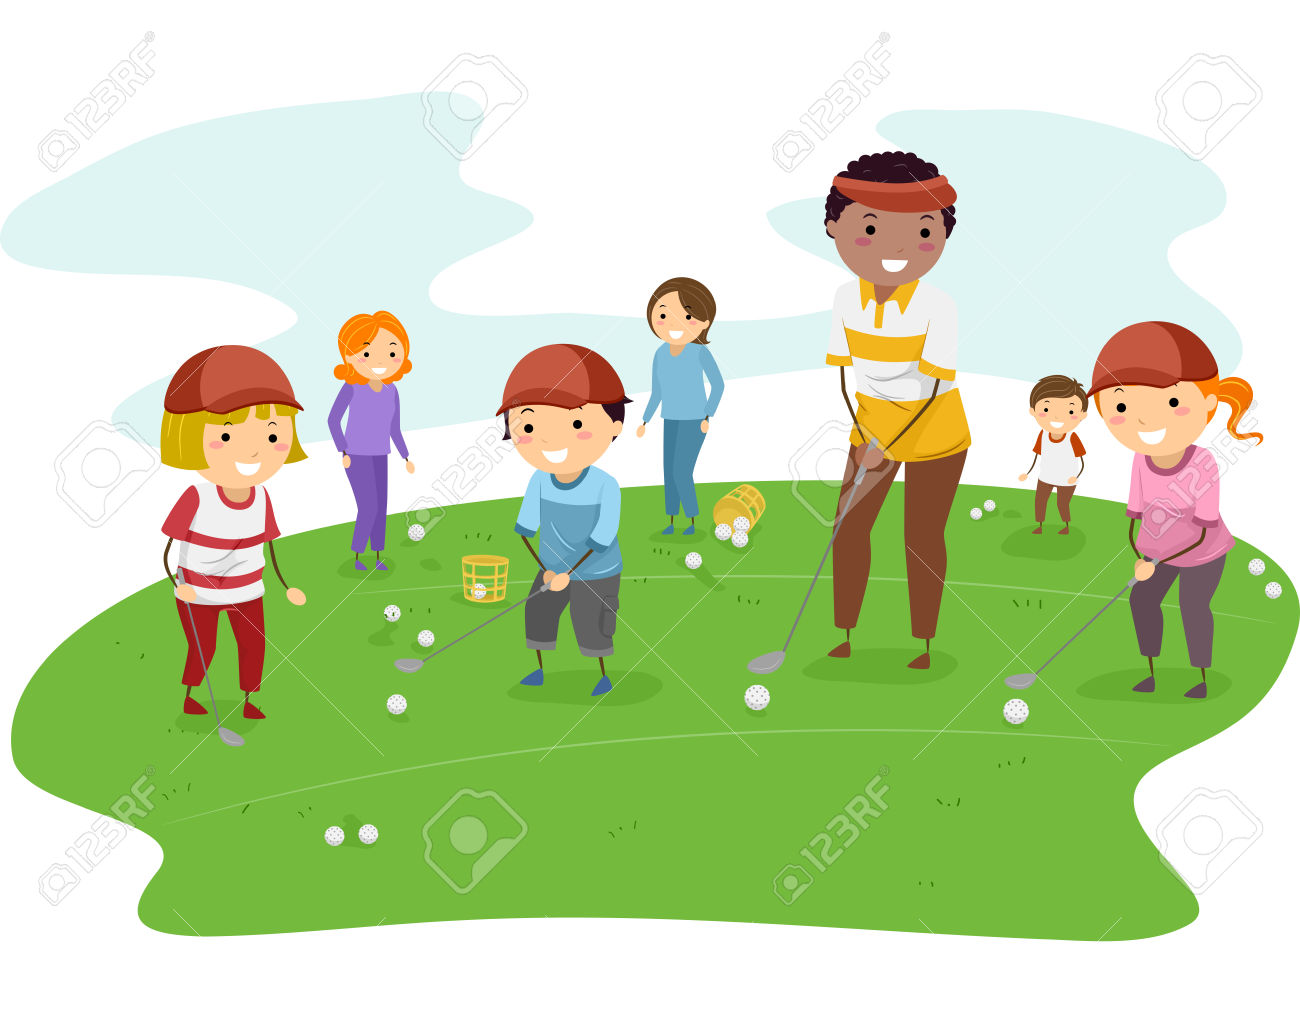 Illustration Of Kids Getting Golf Lessons From Their Coach Royalty.